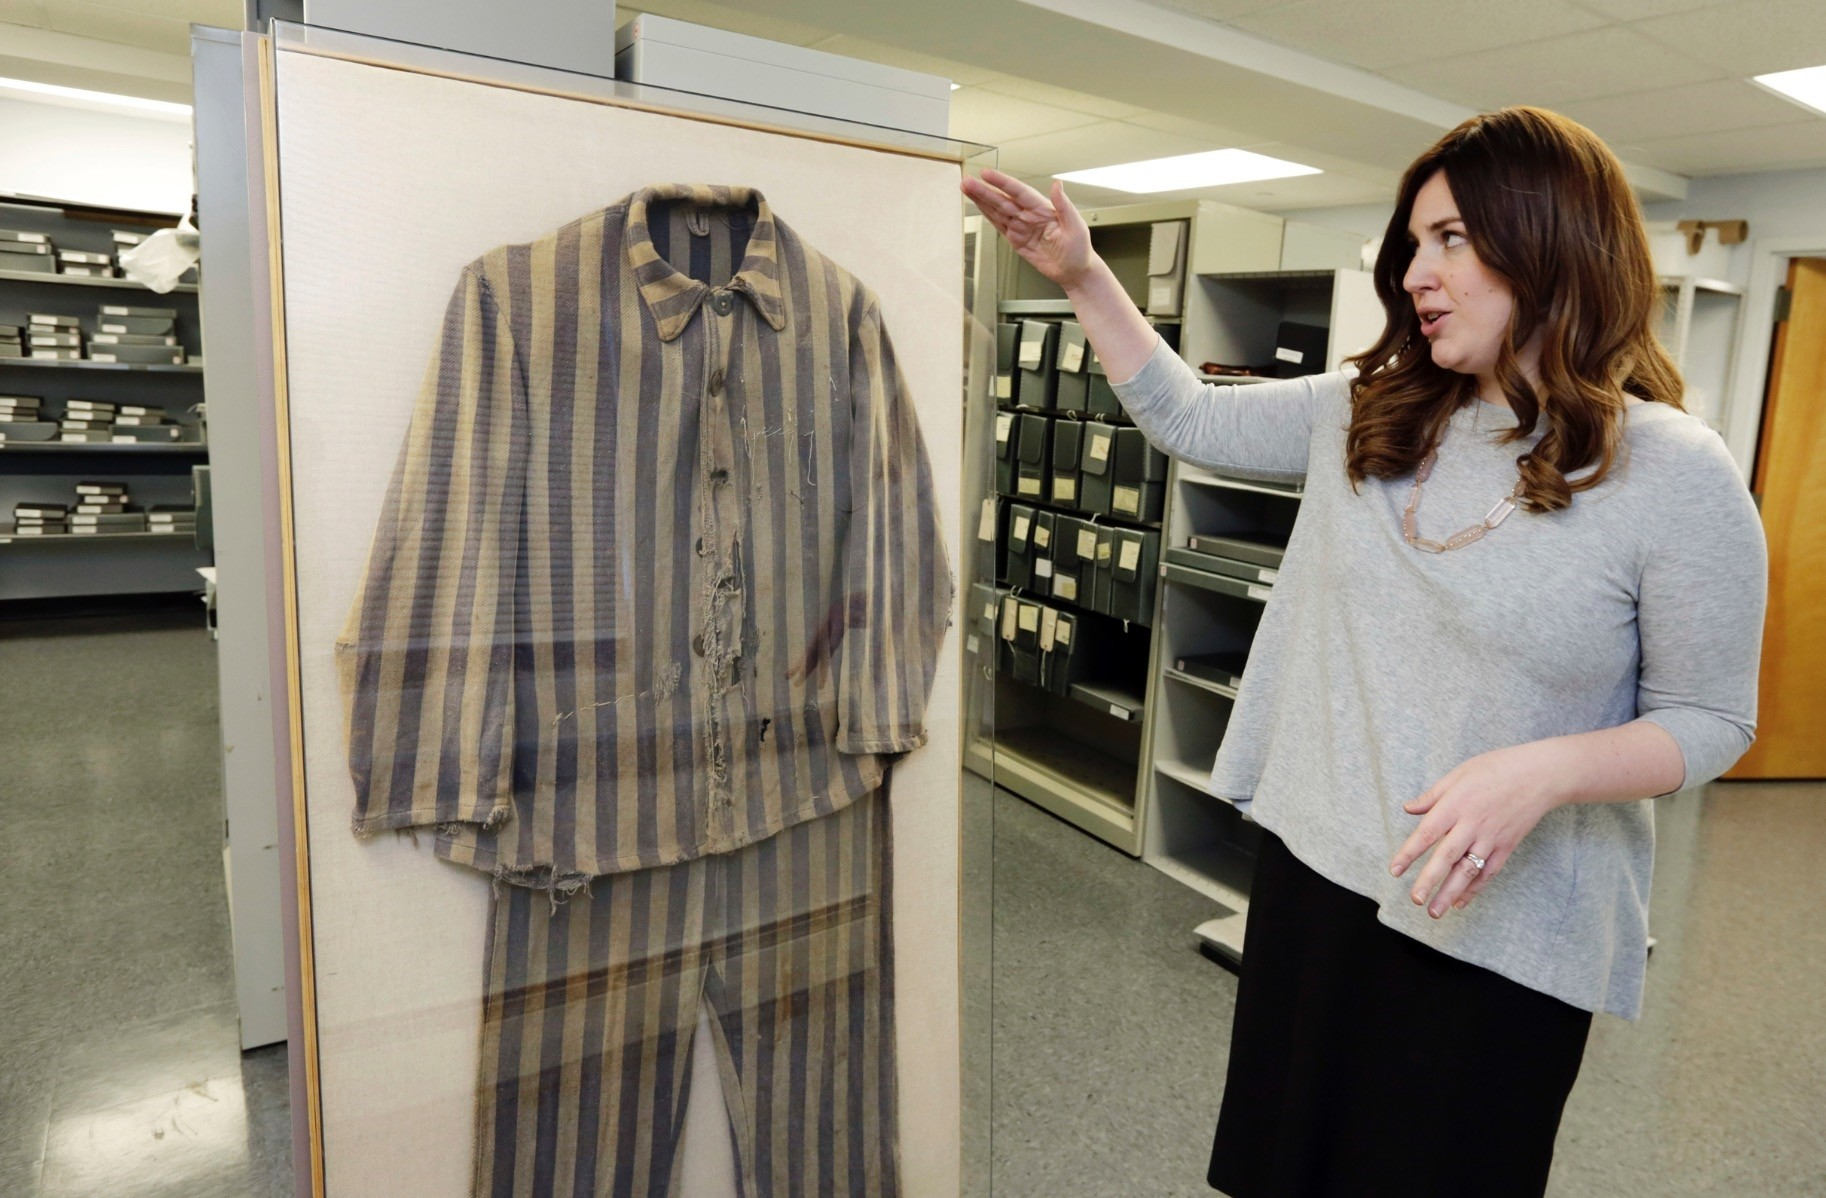 Director of Collections Shoshana Greenwald at the Amud Aish Memorial Museum in Brooklyn, N.Y., talks about the 1945 uniform from Bergen-Belsen concentration camp survivor Chaim Schmidt.